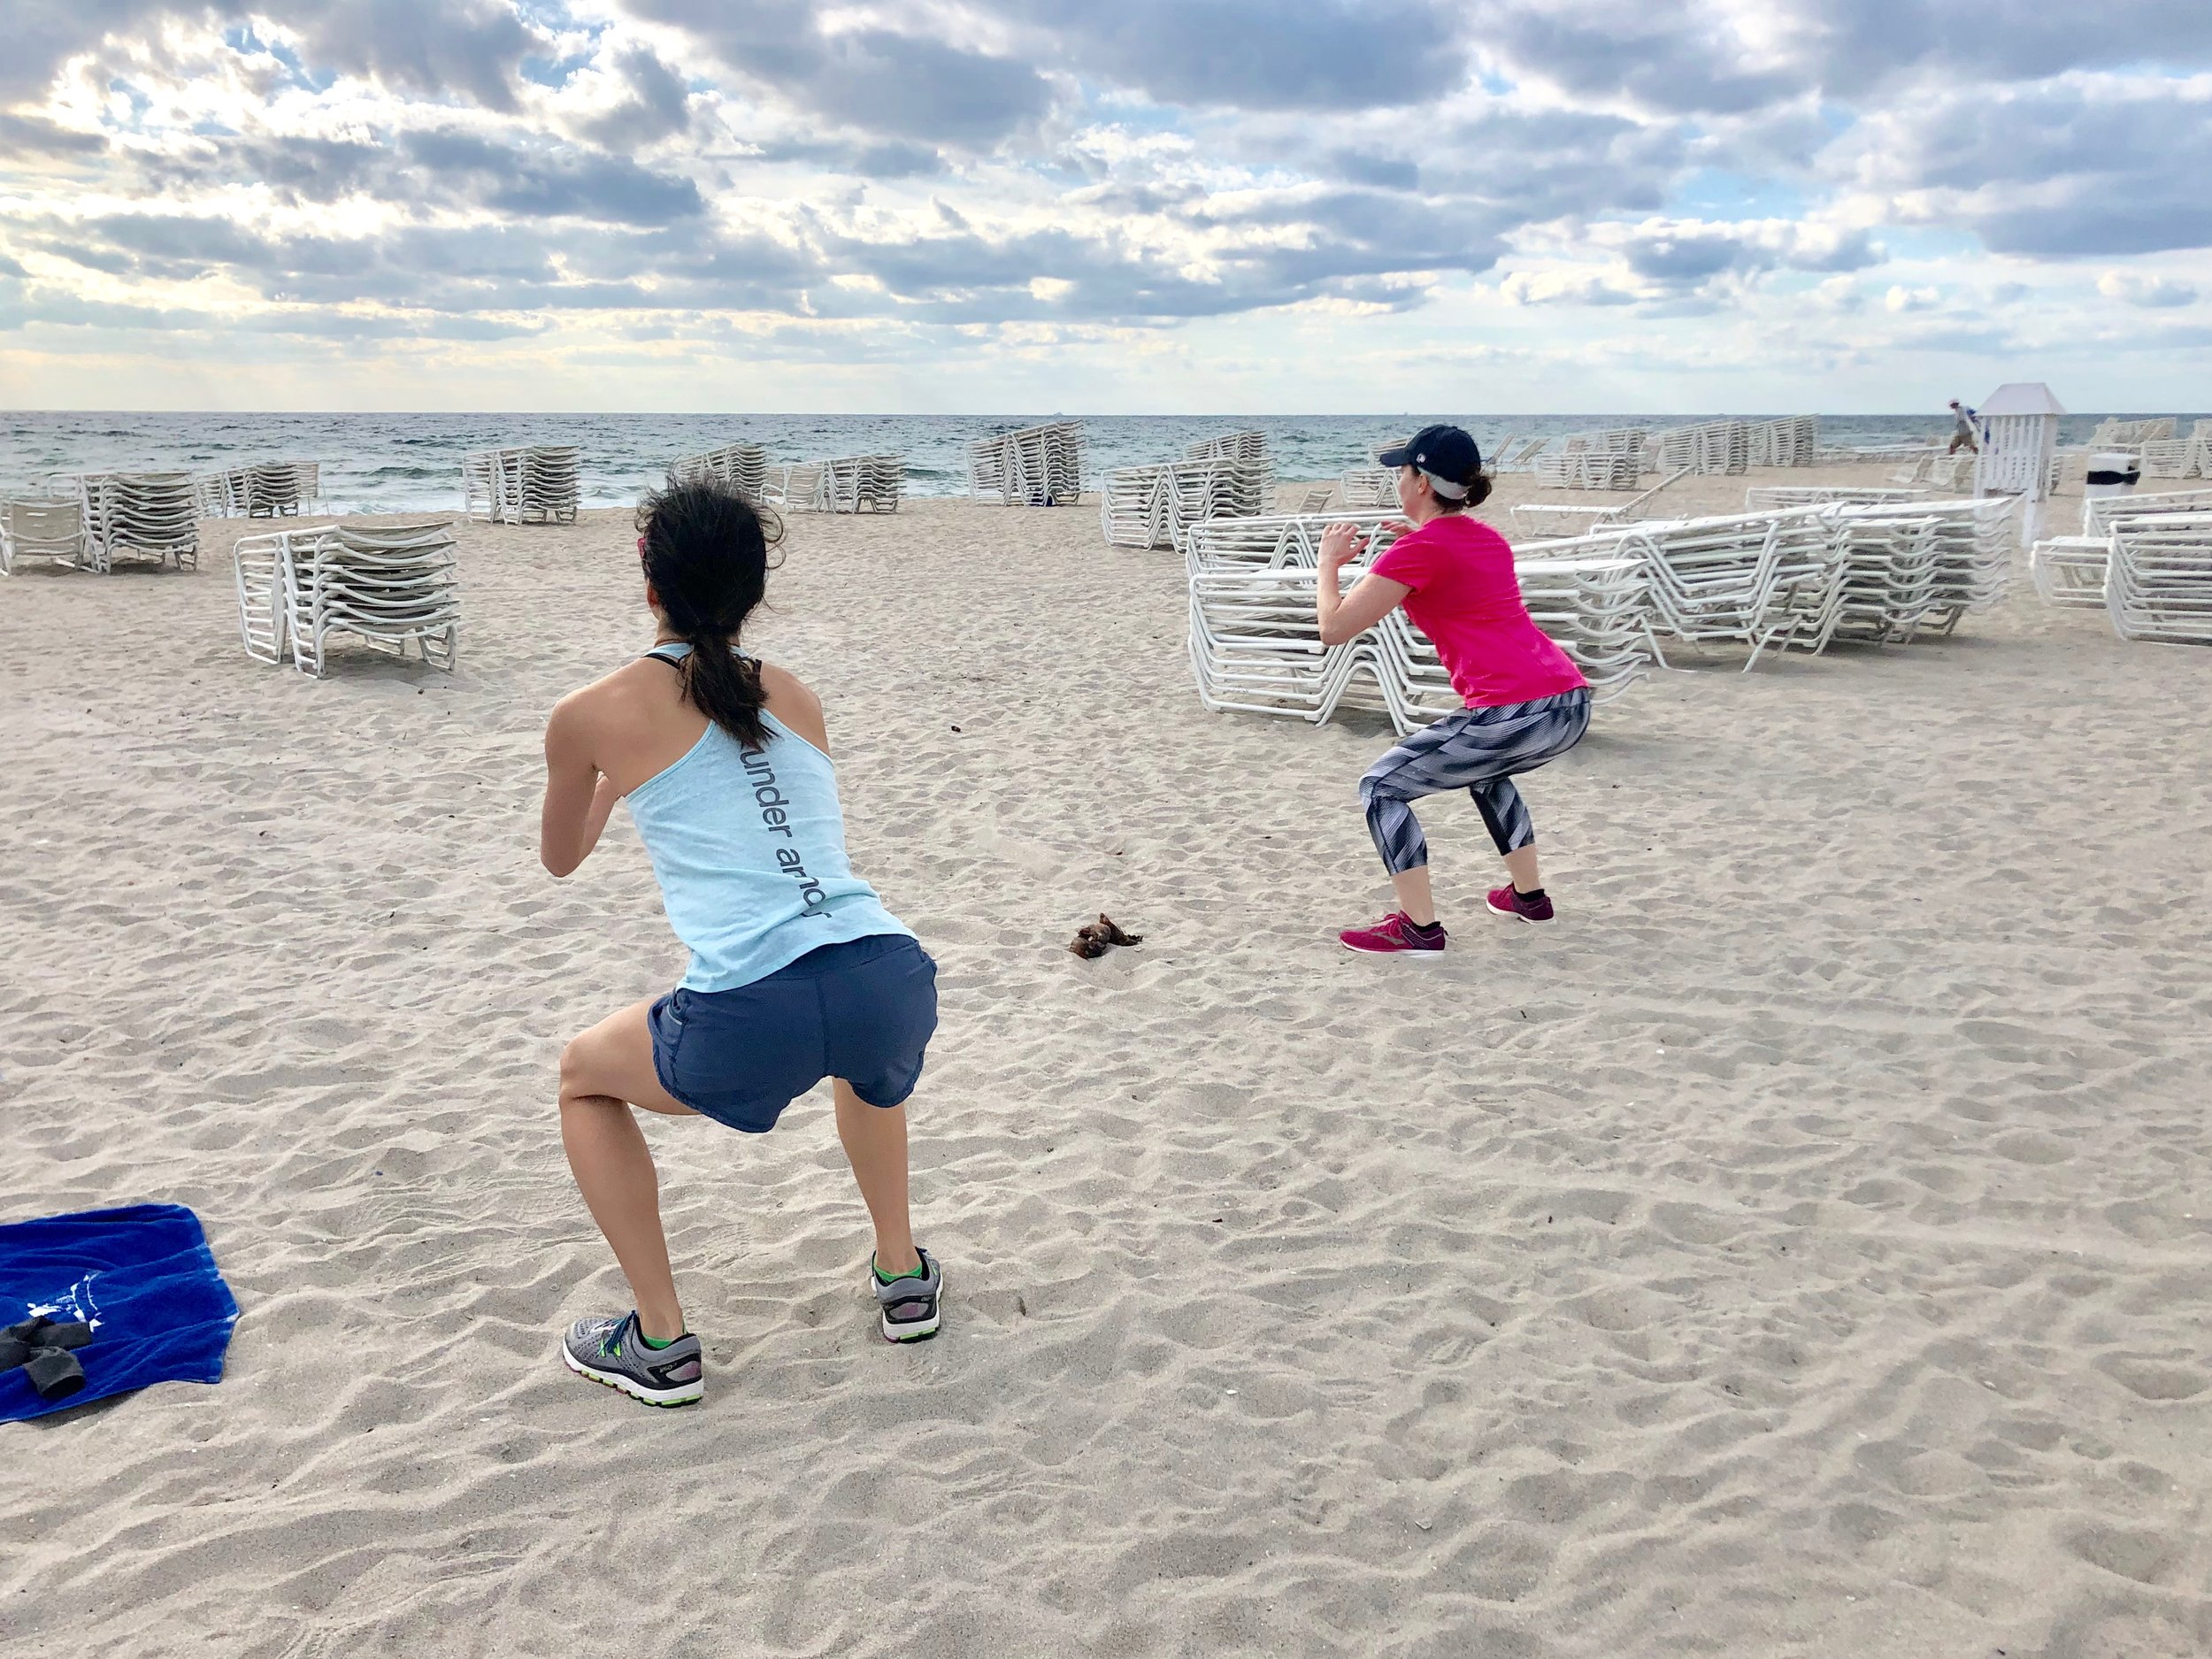 Boot camp guests do squats on the beach during bodyweight workout.